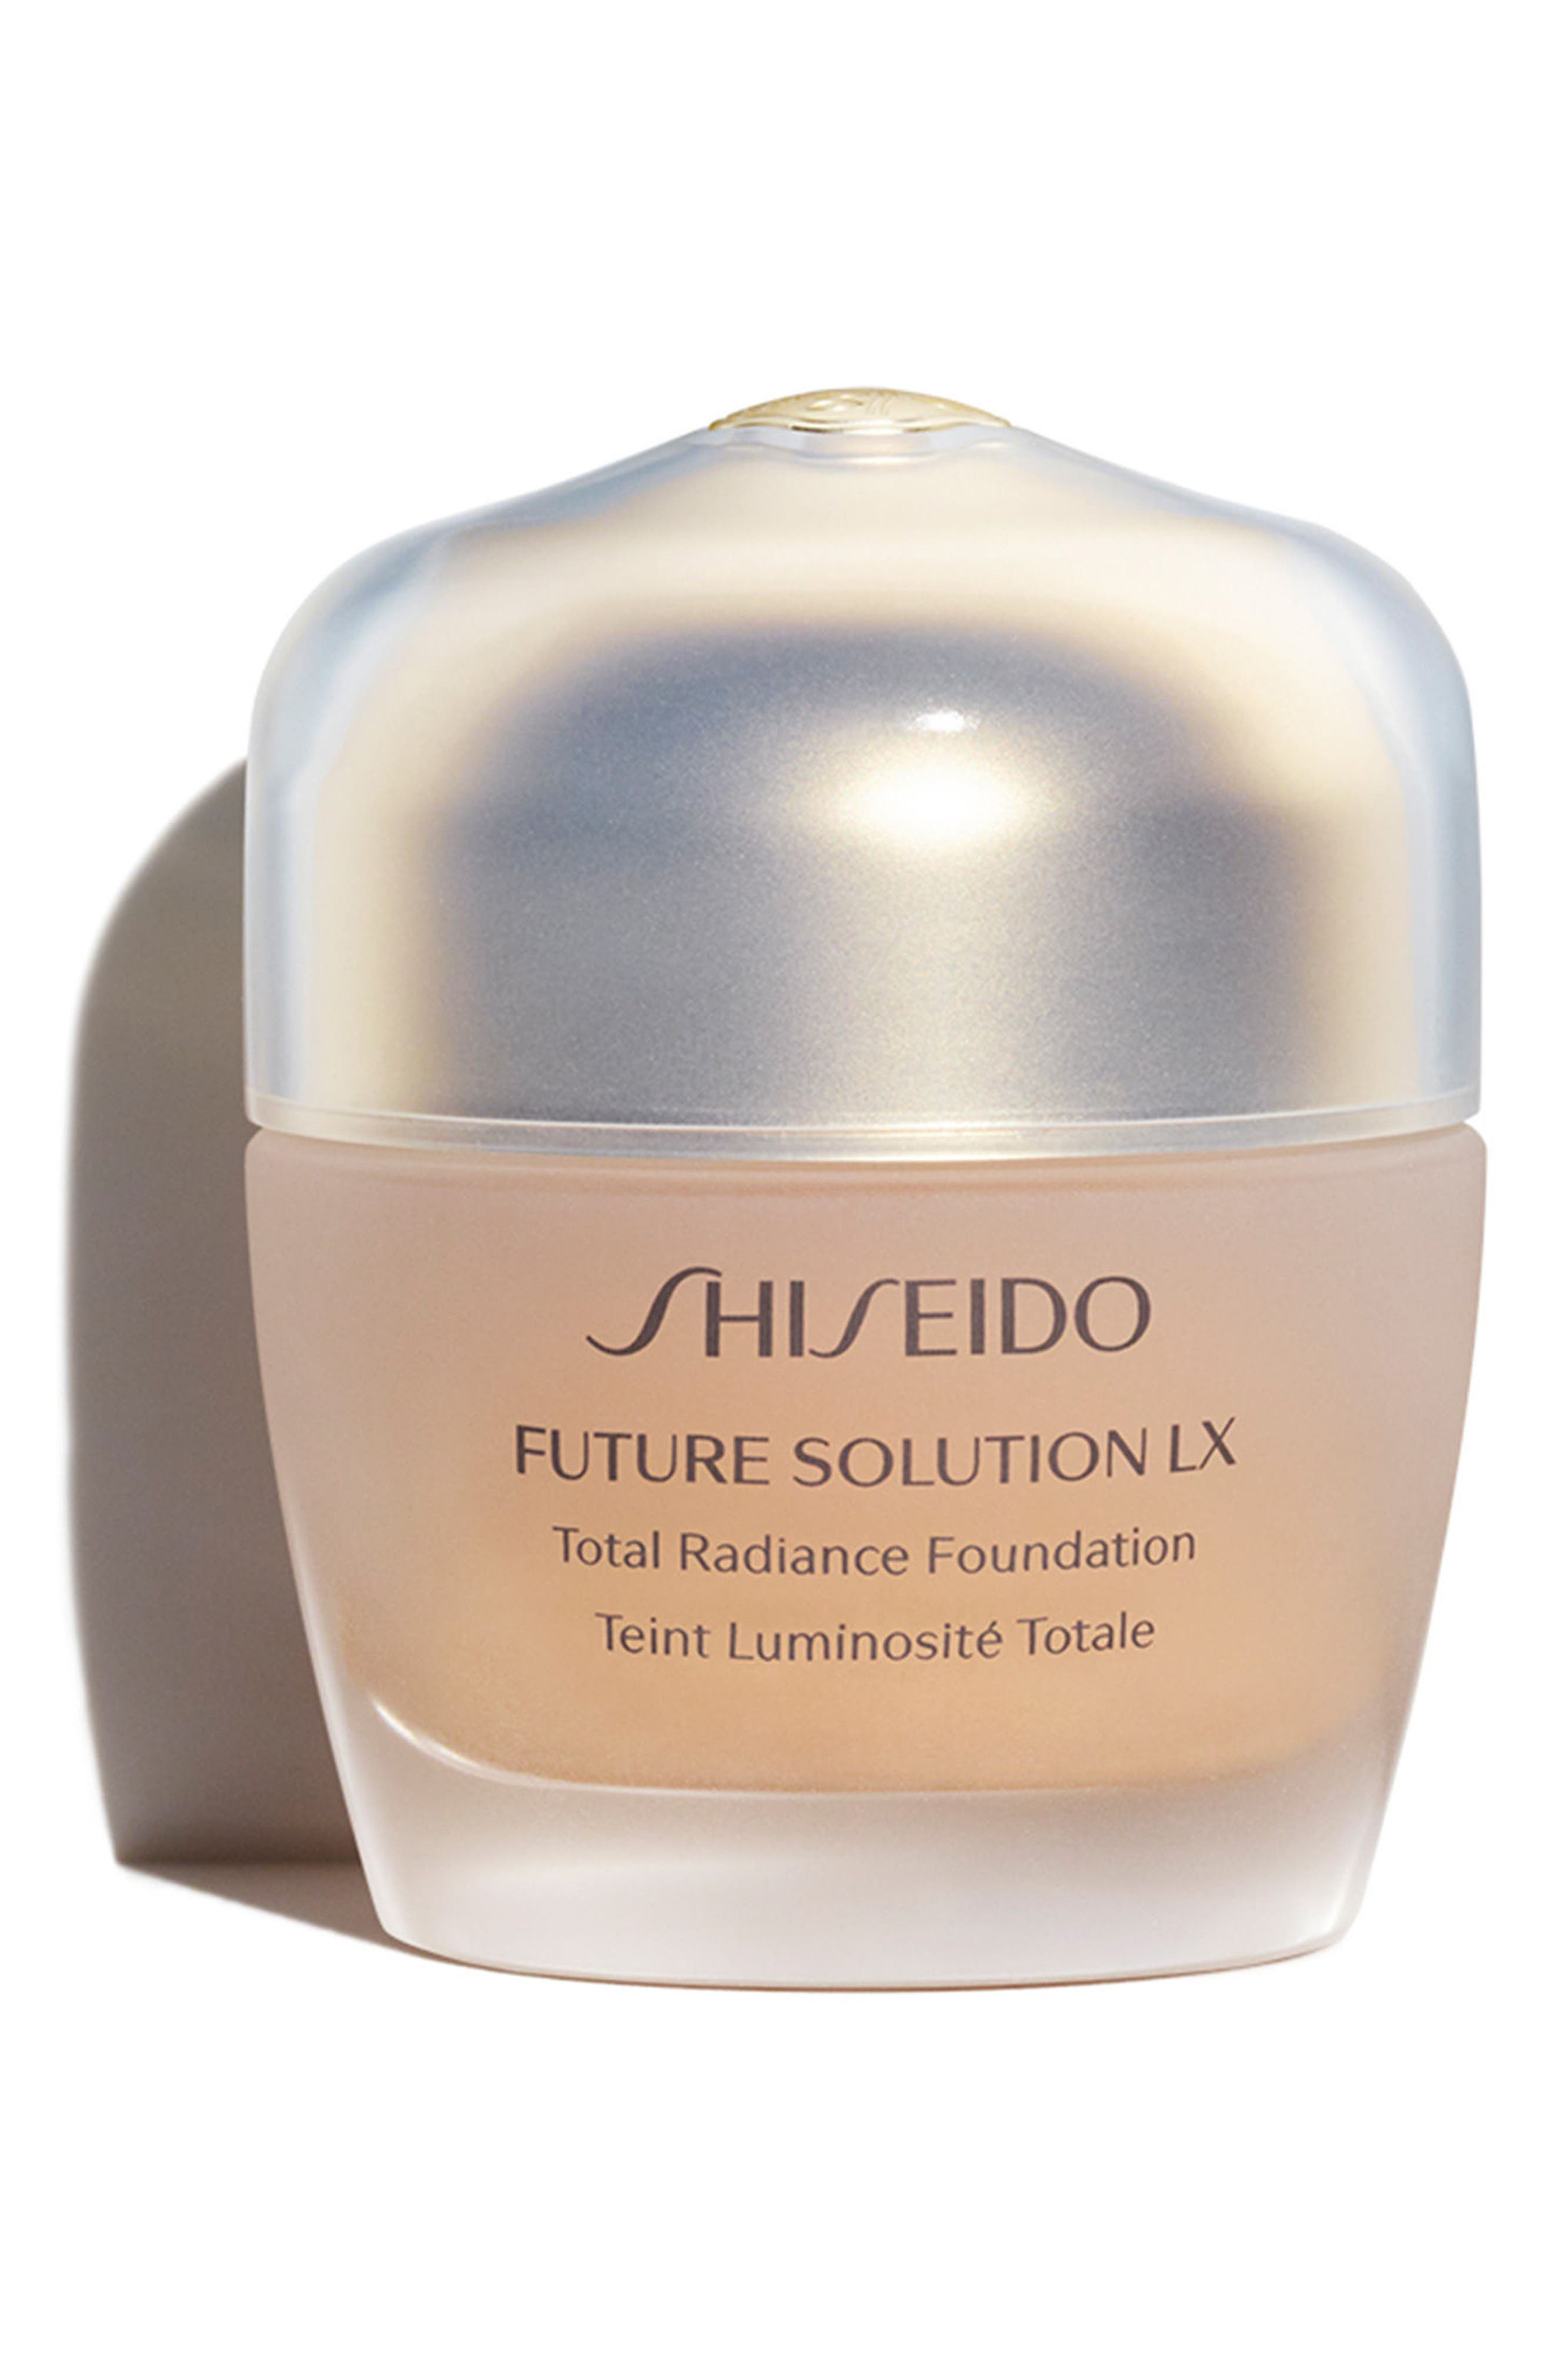 Shiseido Future Solution LX Total Radiance Foundation Broad Spectrum SPF 20 Sunscreen (Nordstrom Exclusive)